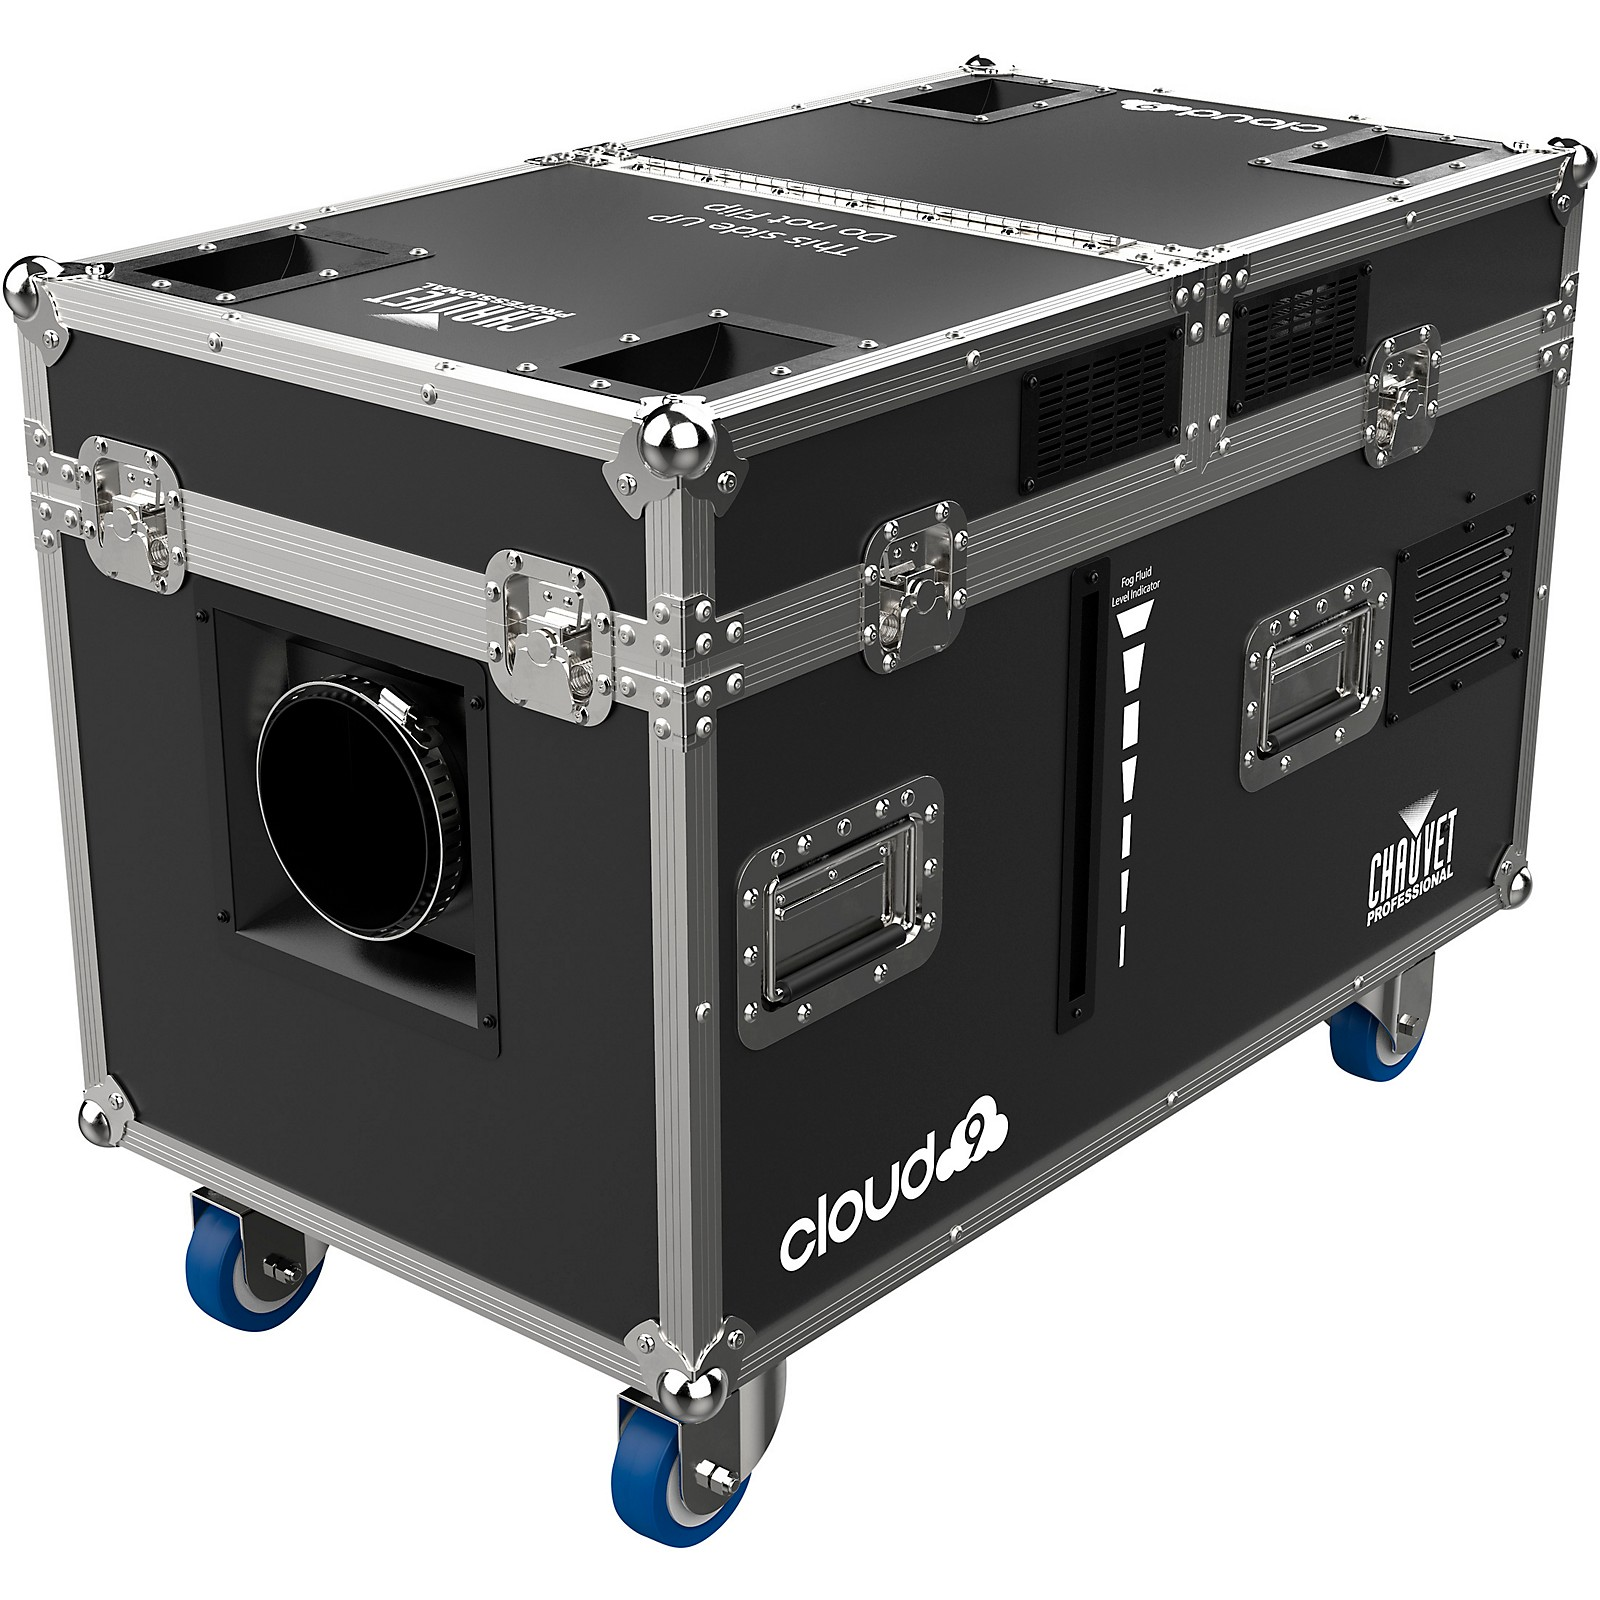 CHAUVET Professional Cloud 9 Low-Lying Fogger